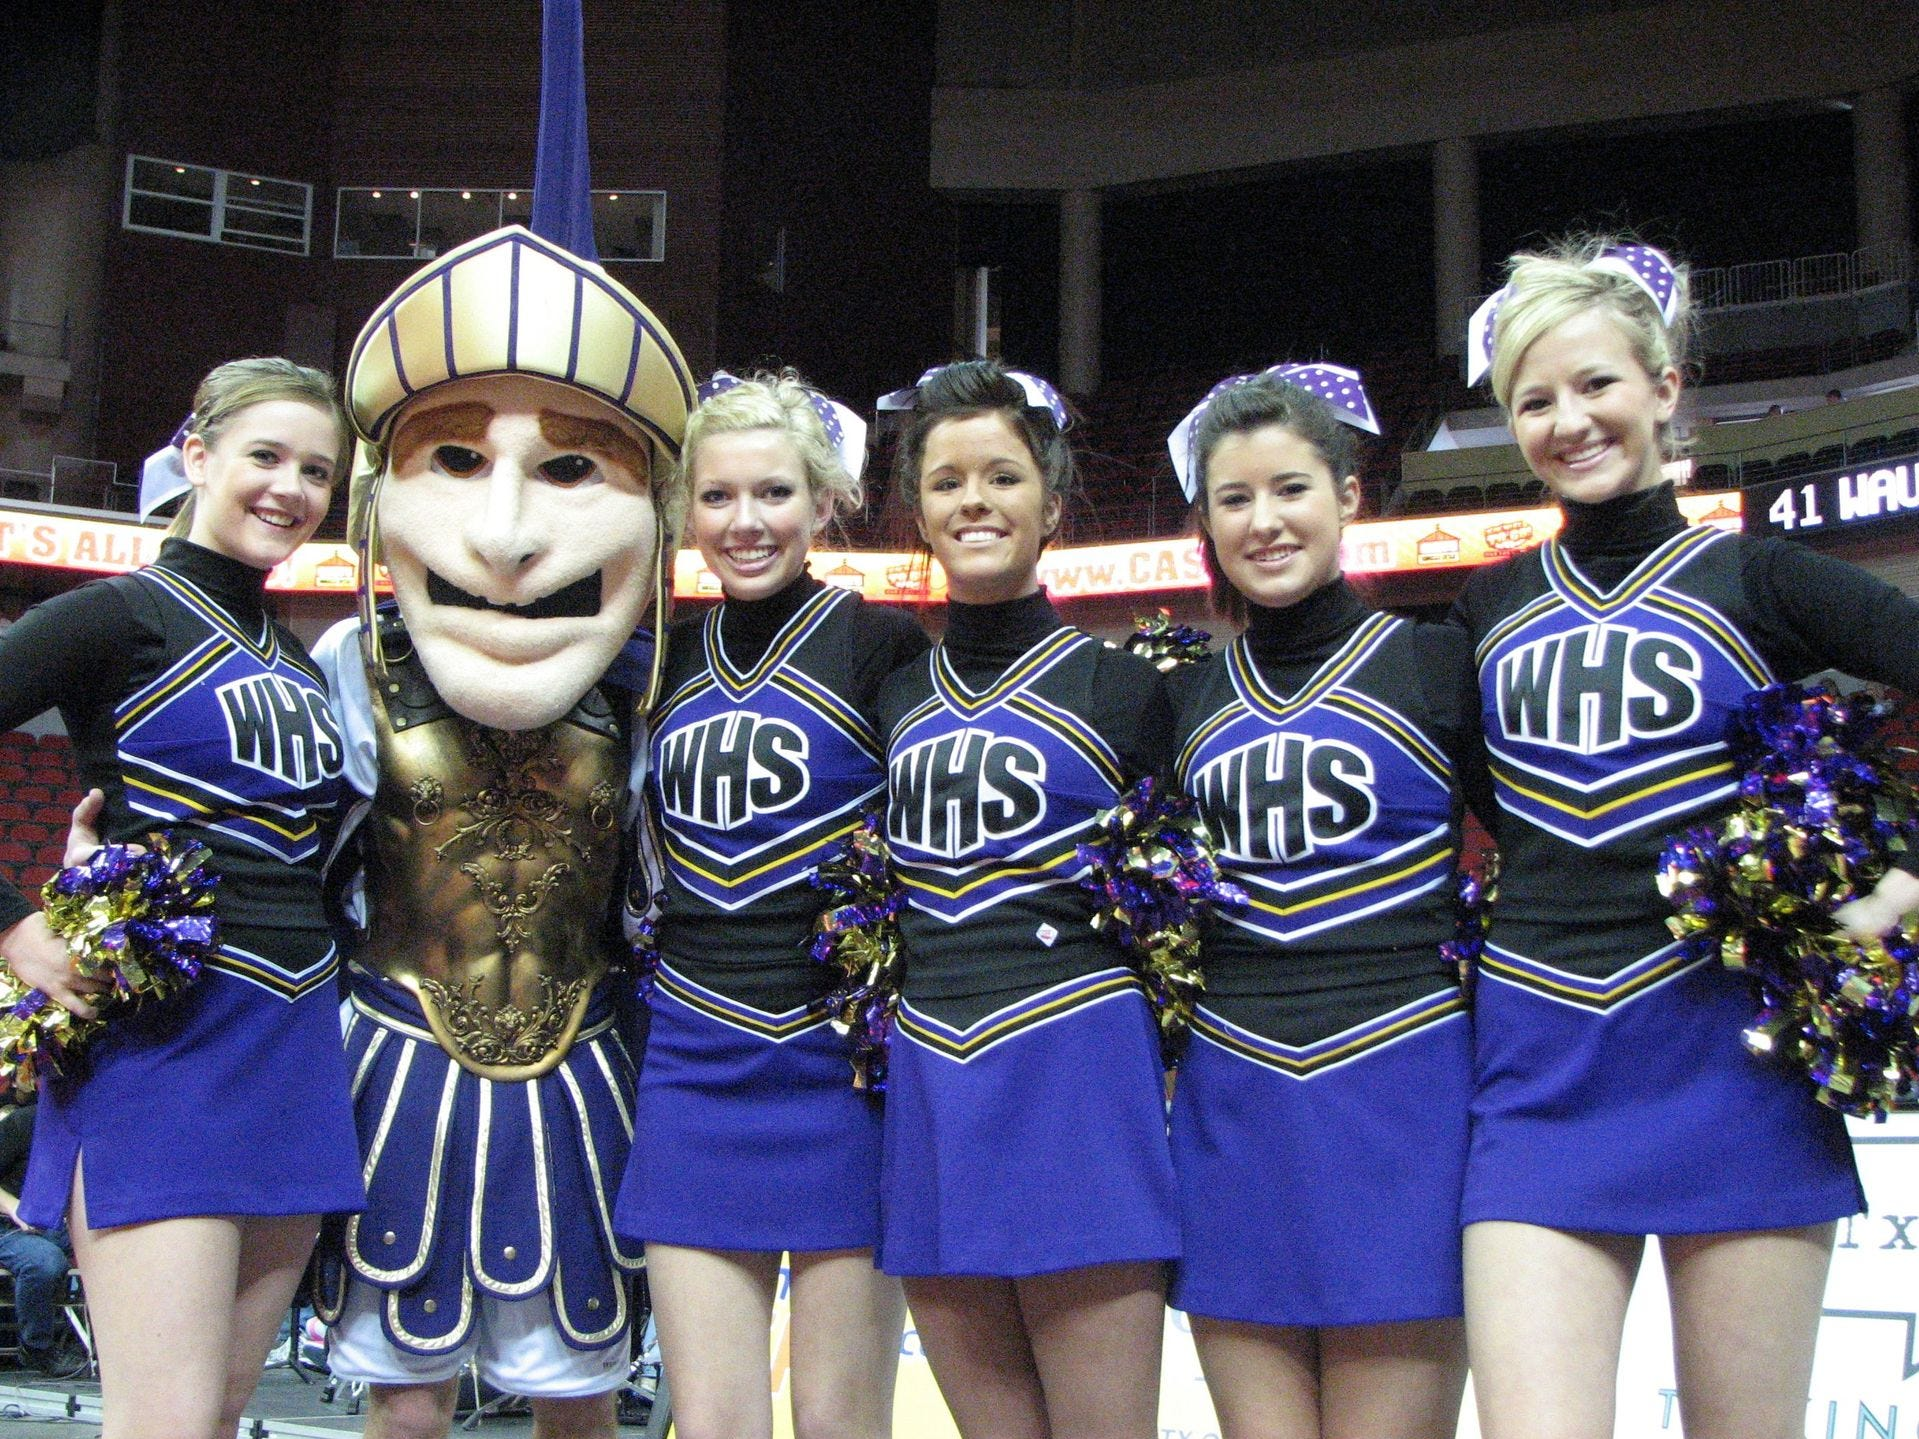 2009: Waukee cheerleaders couldn't help their team win against Cedar Rapids Kennedy in the first round of the state girls' basketball tournament at Wells Fargo Arena. Register file photo